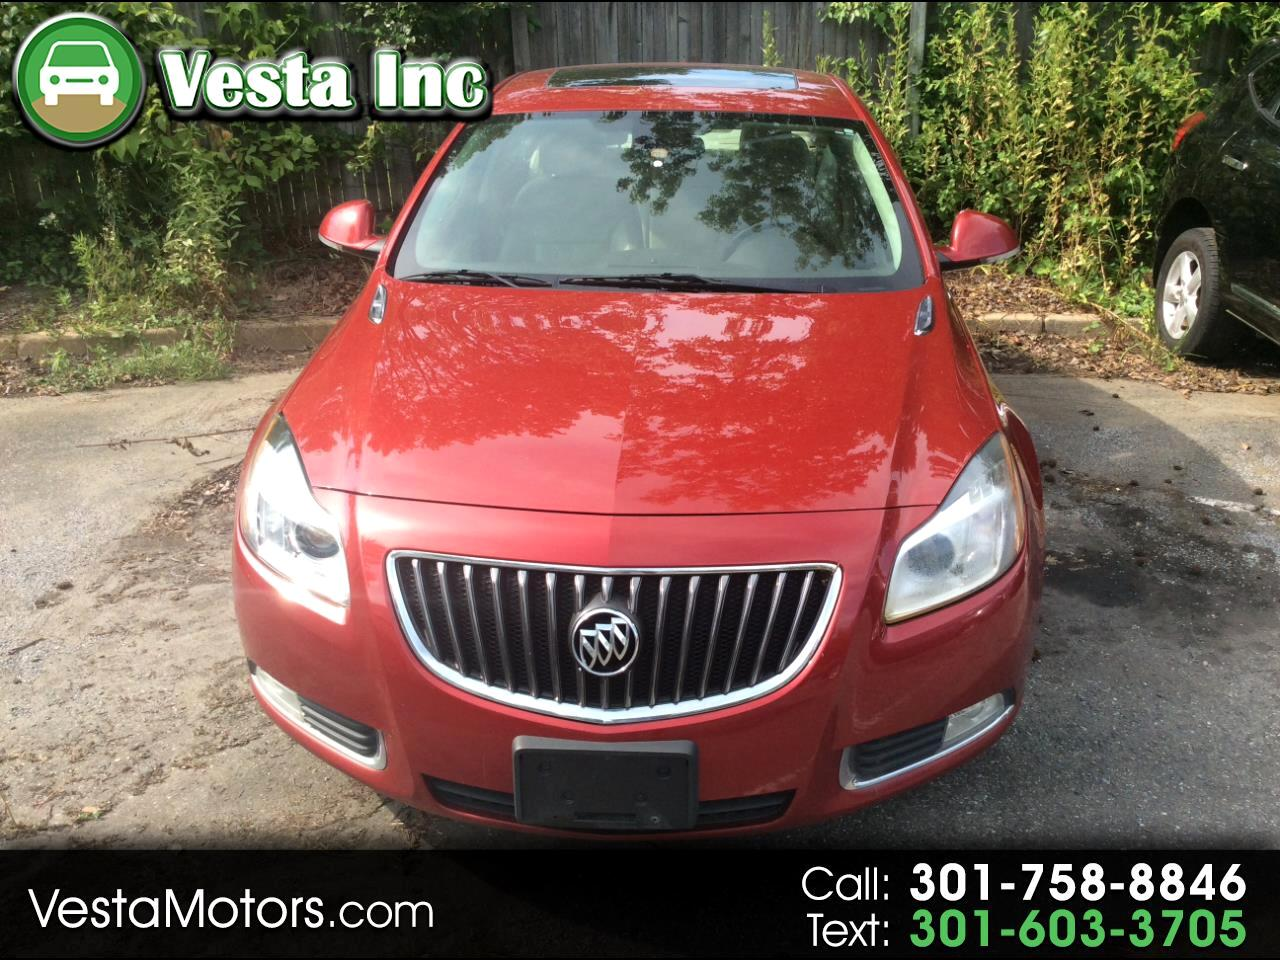 Buick Regal 4dr Sdn Turbo Premium 2 2012